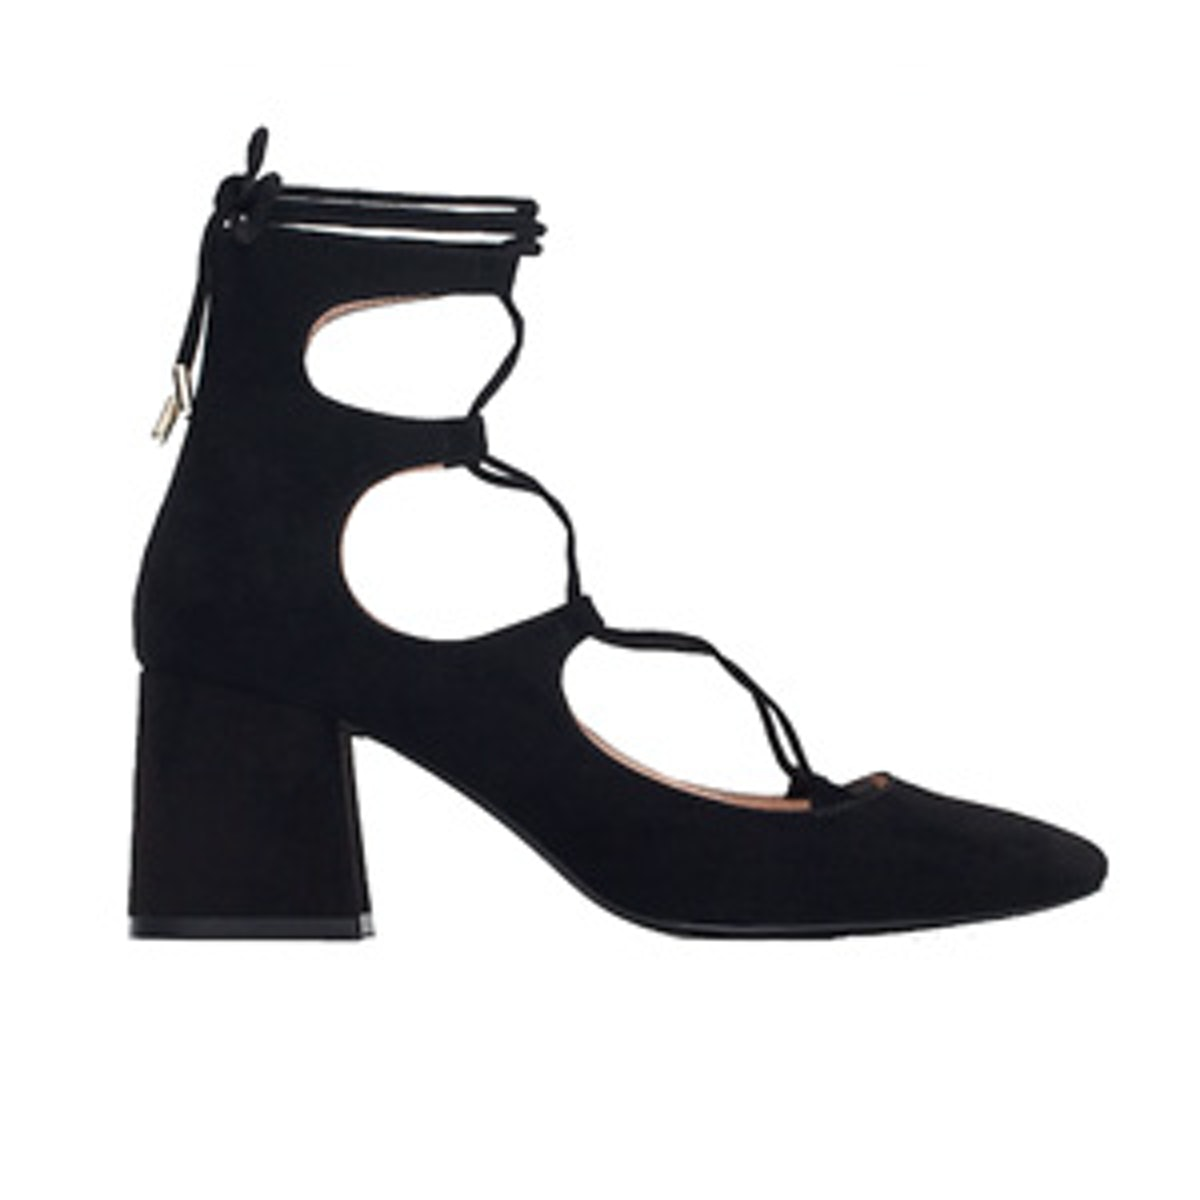 Lace-Up High Heel Shoes